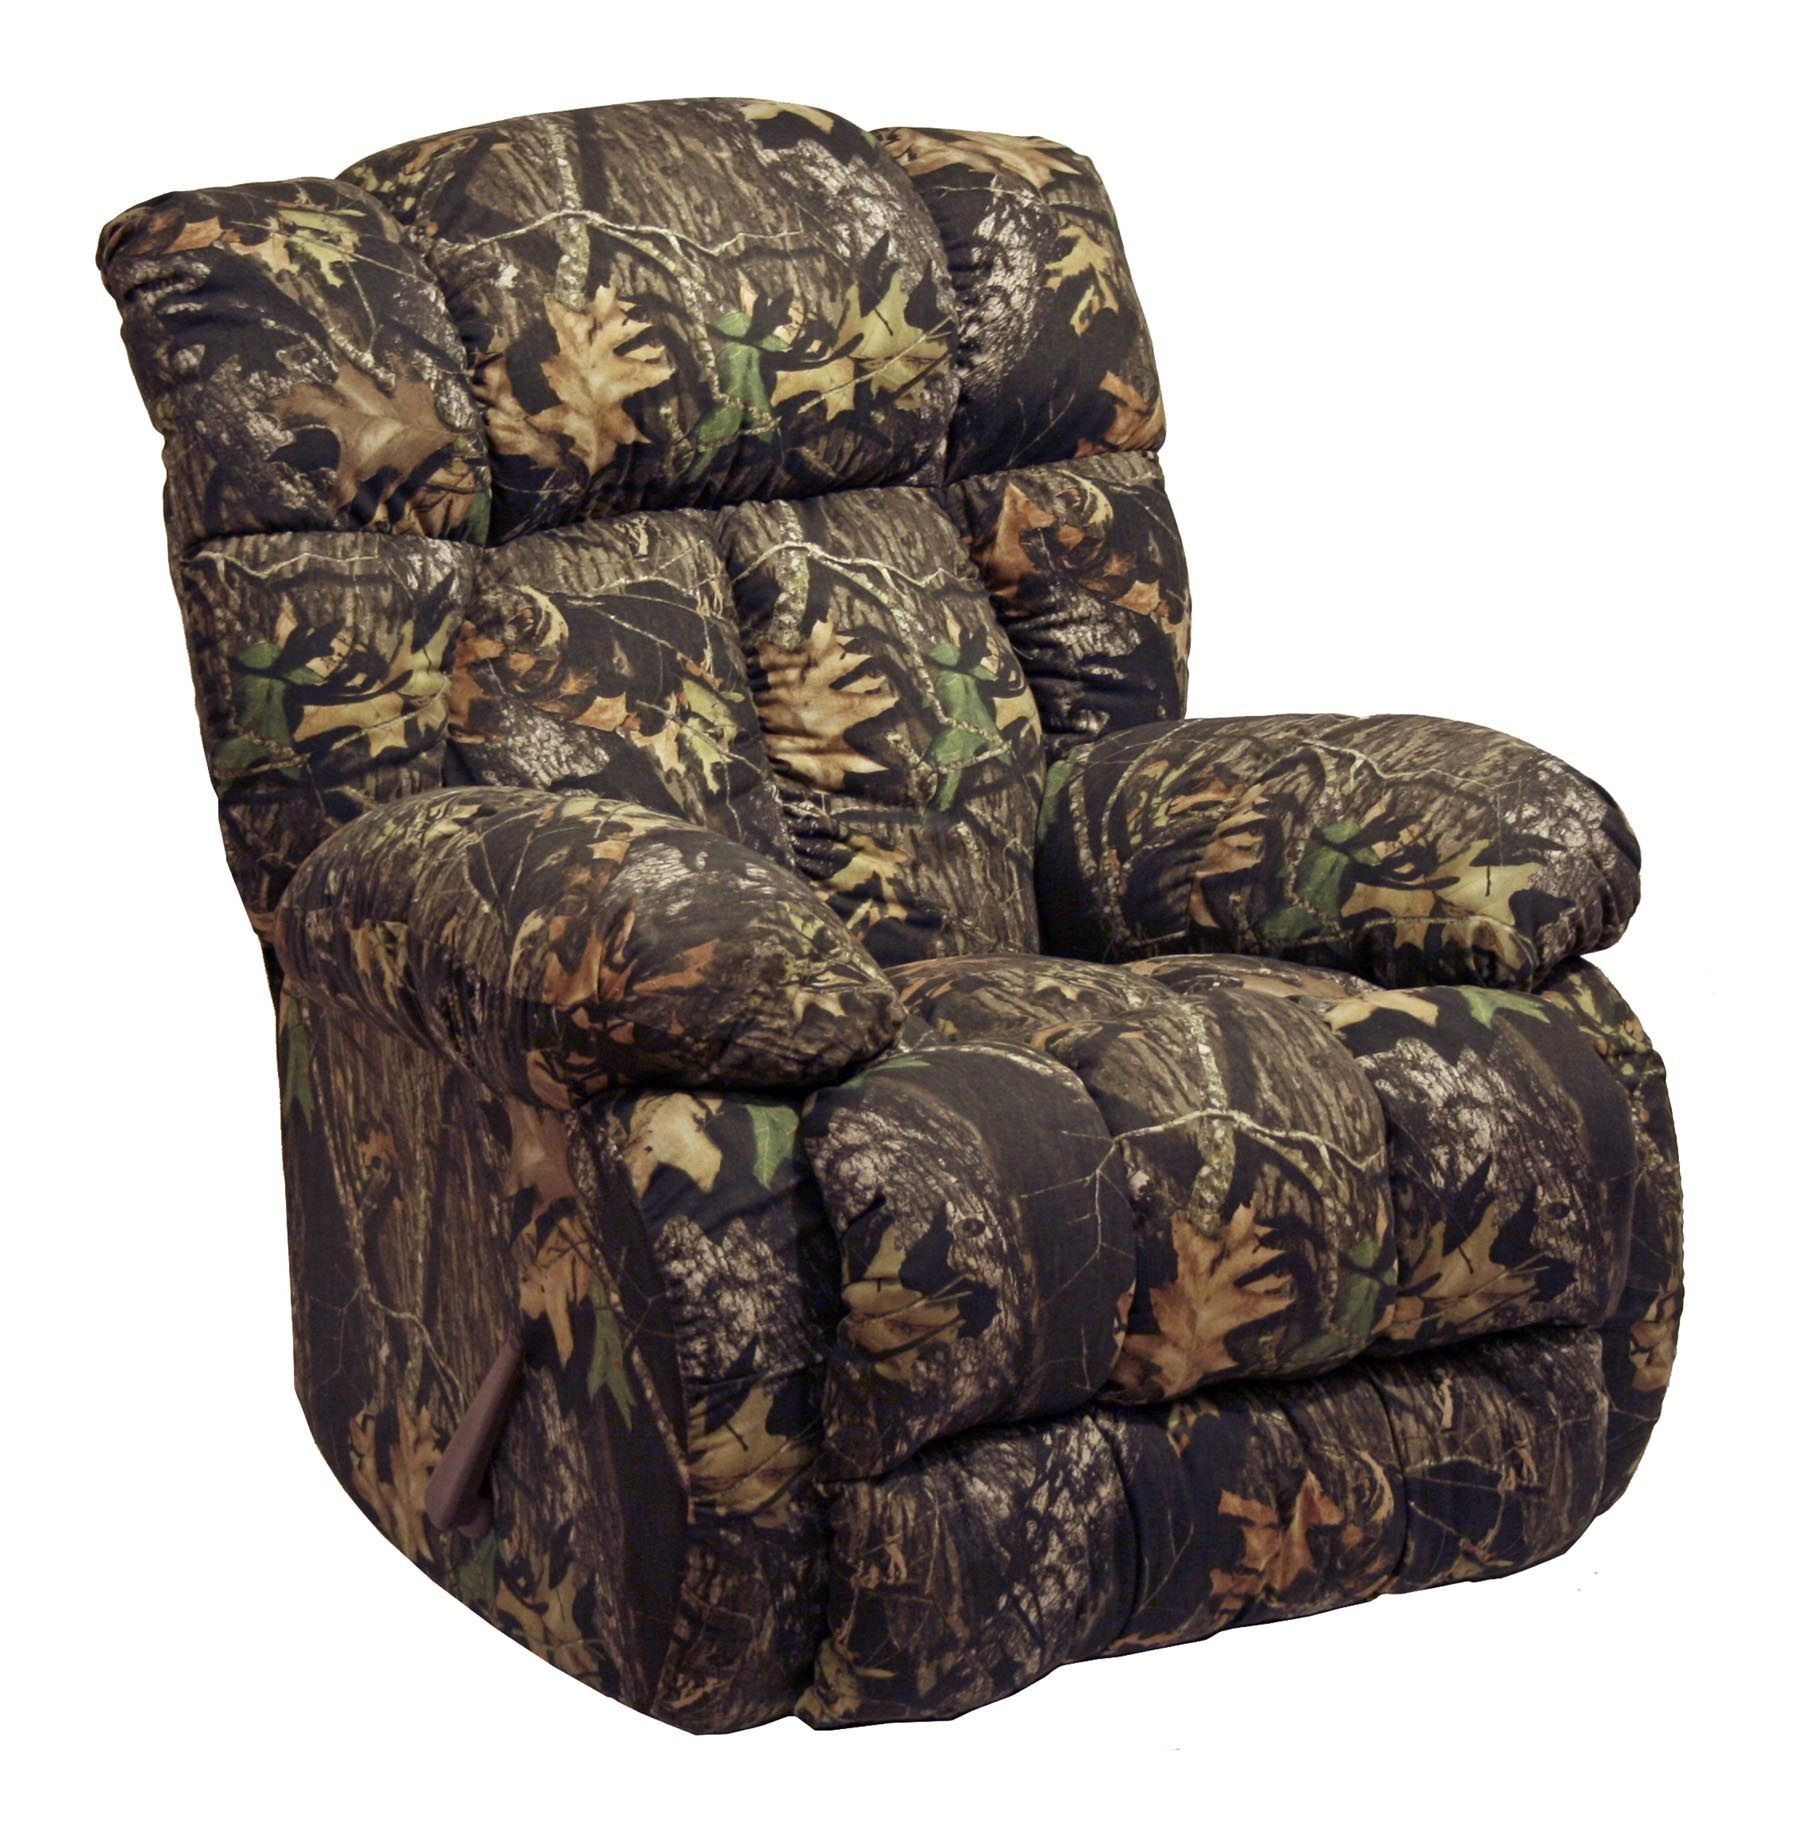 Camouflage Furniture For Sale